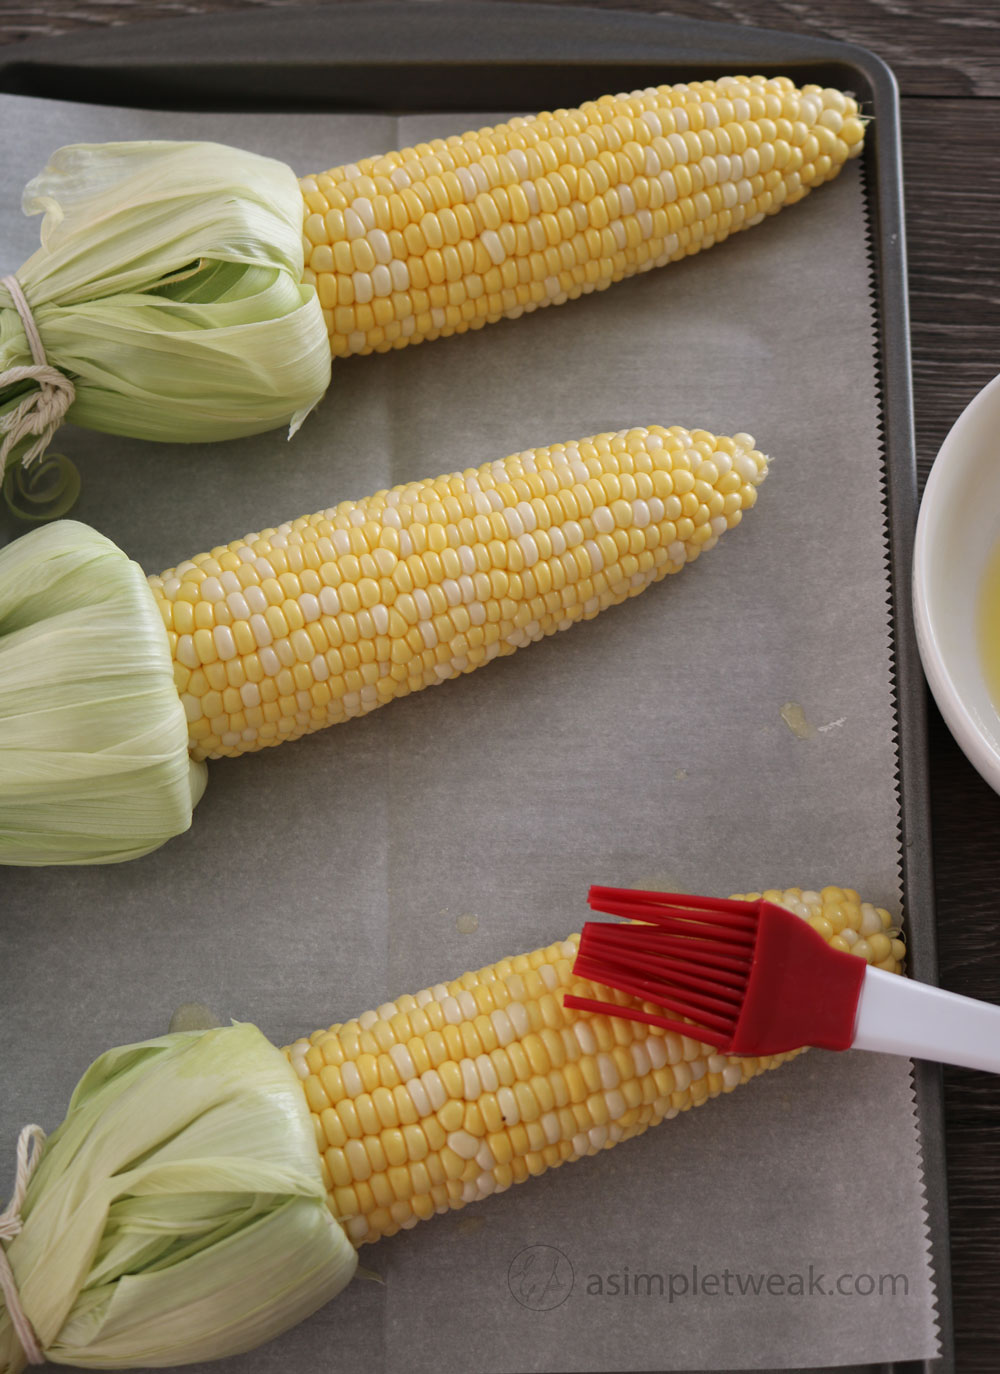 Brush-the-corns-with-unsalted-butter